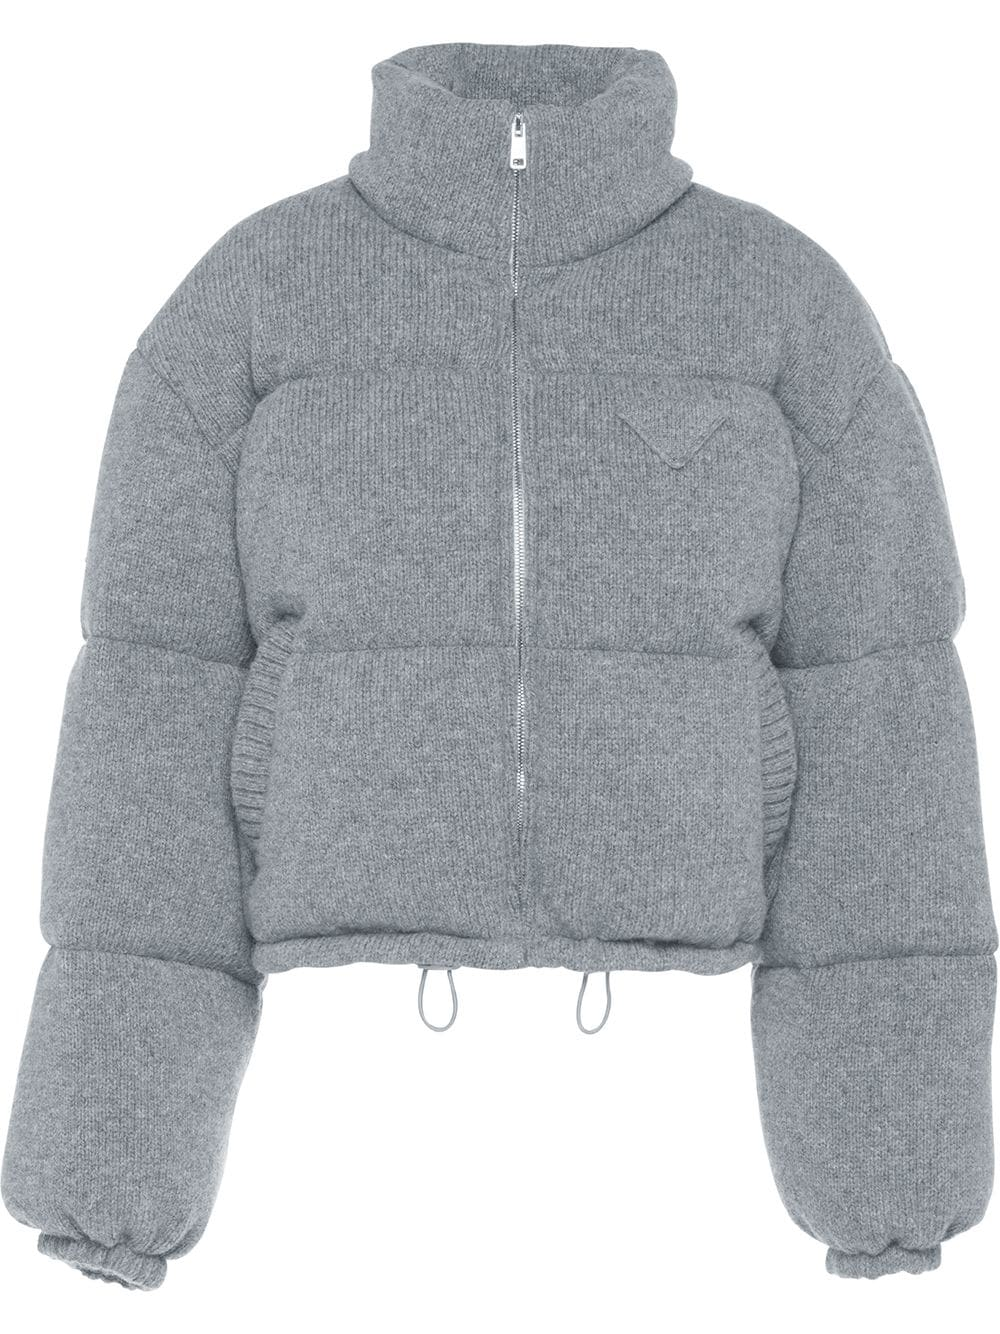 Prada, Wool and cashmere puffer jacket 